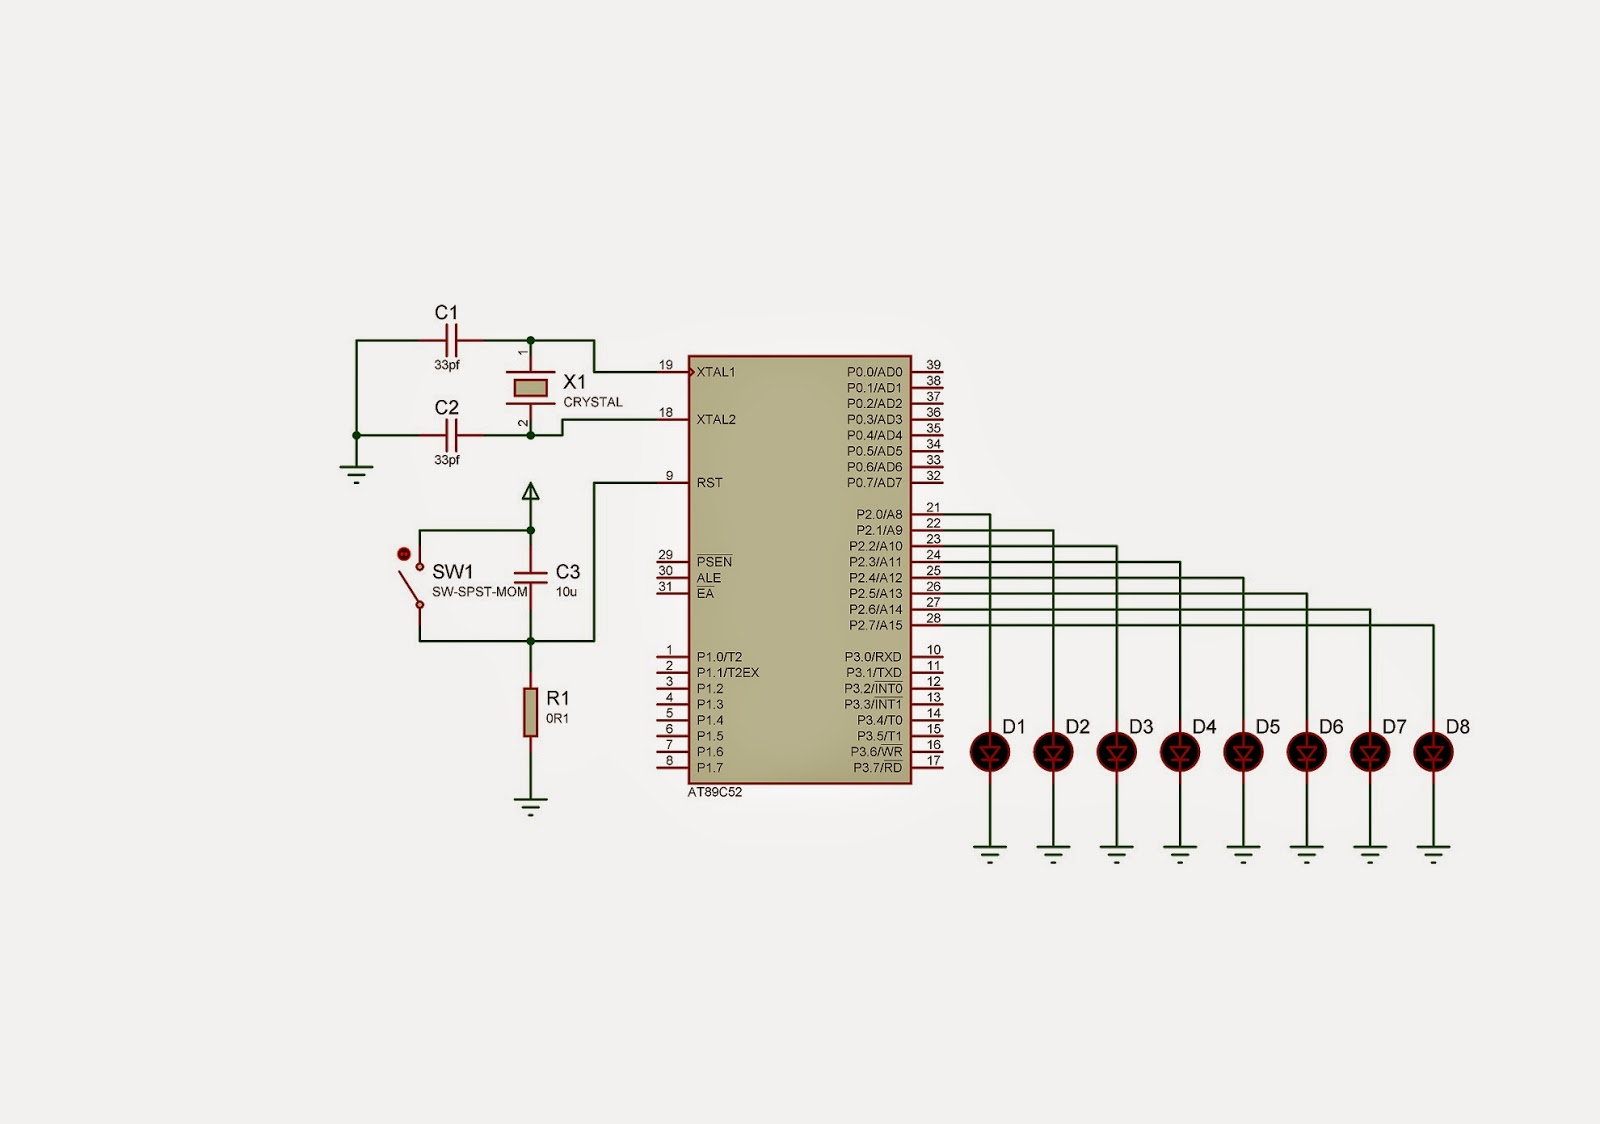 Electronics Guru Led Chaser Using 8051 Circuit Diagram For More Information About Micro Controller You Can See The Data Sheet Now Design When Crystal Oscillator And Reset Button In